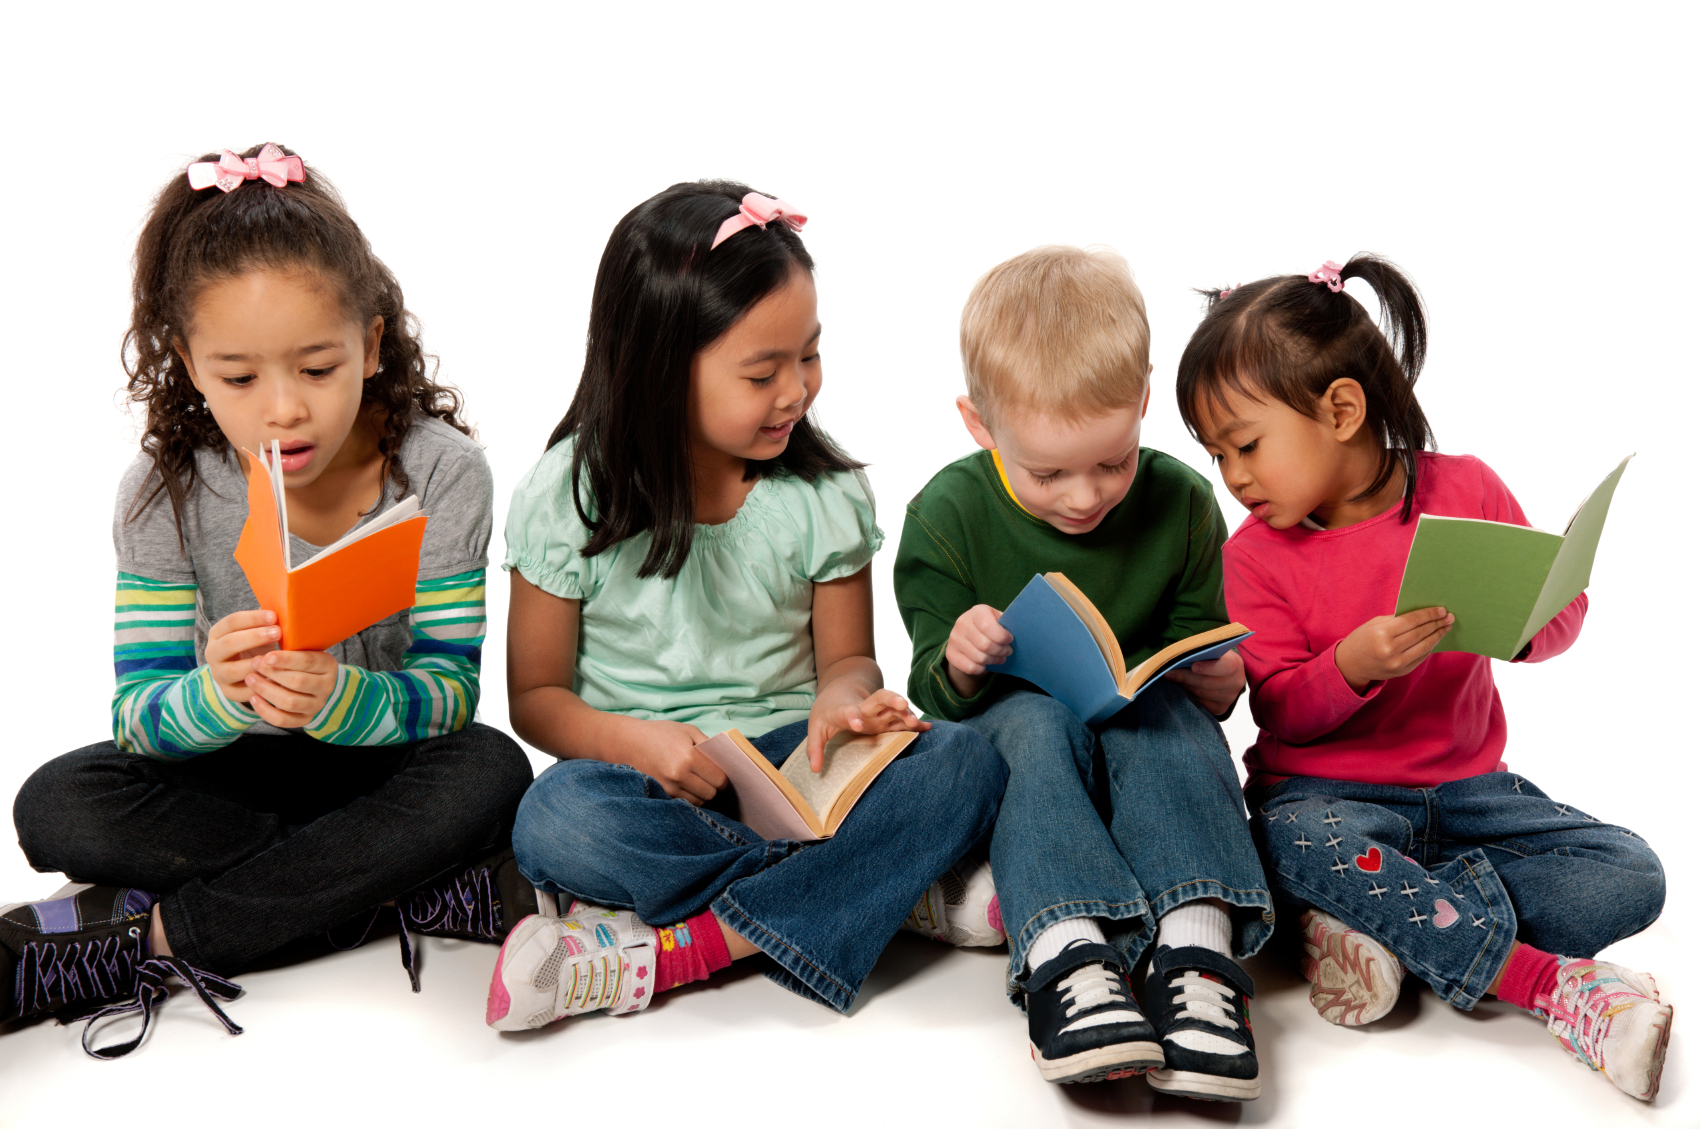 PNG HD Of Kids Reading - 131560